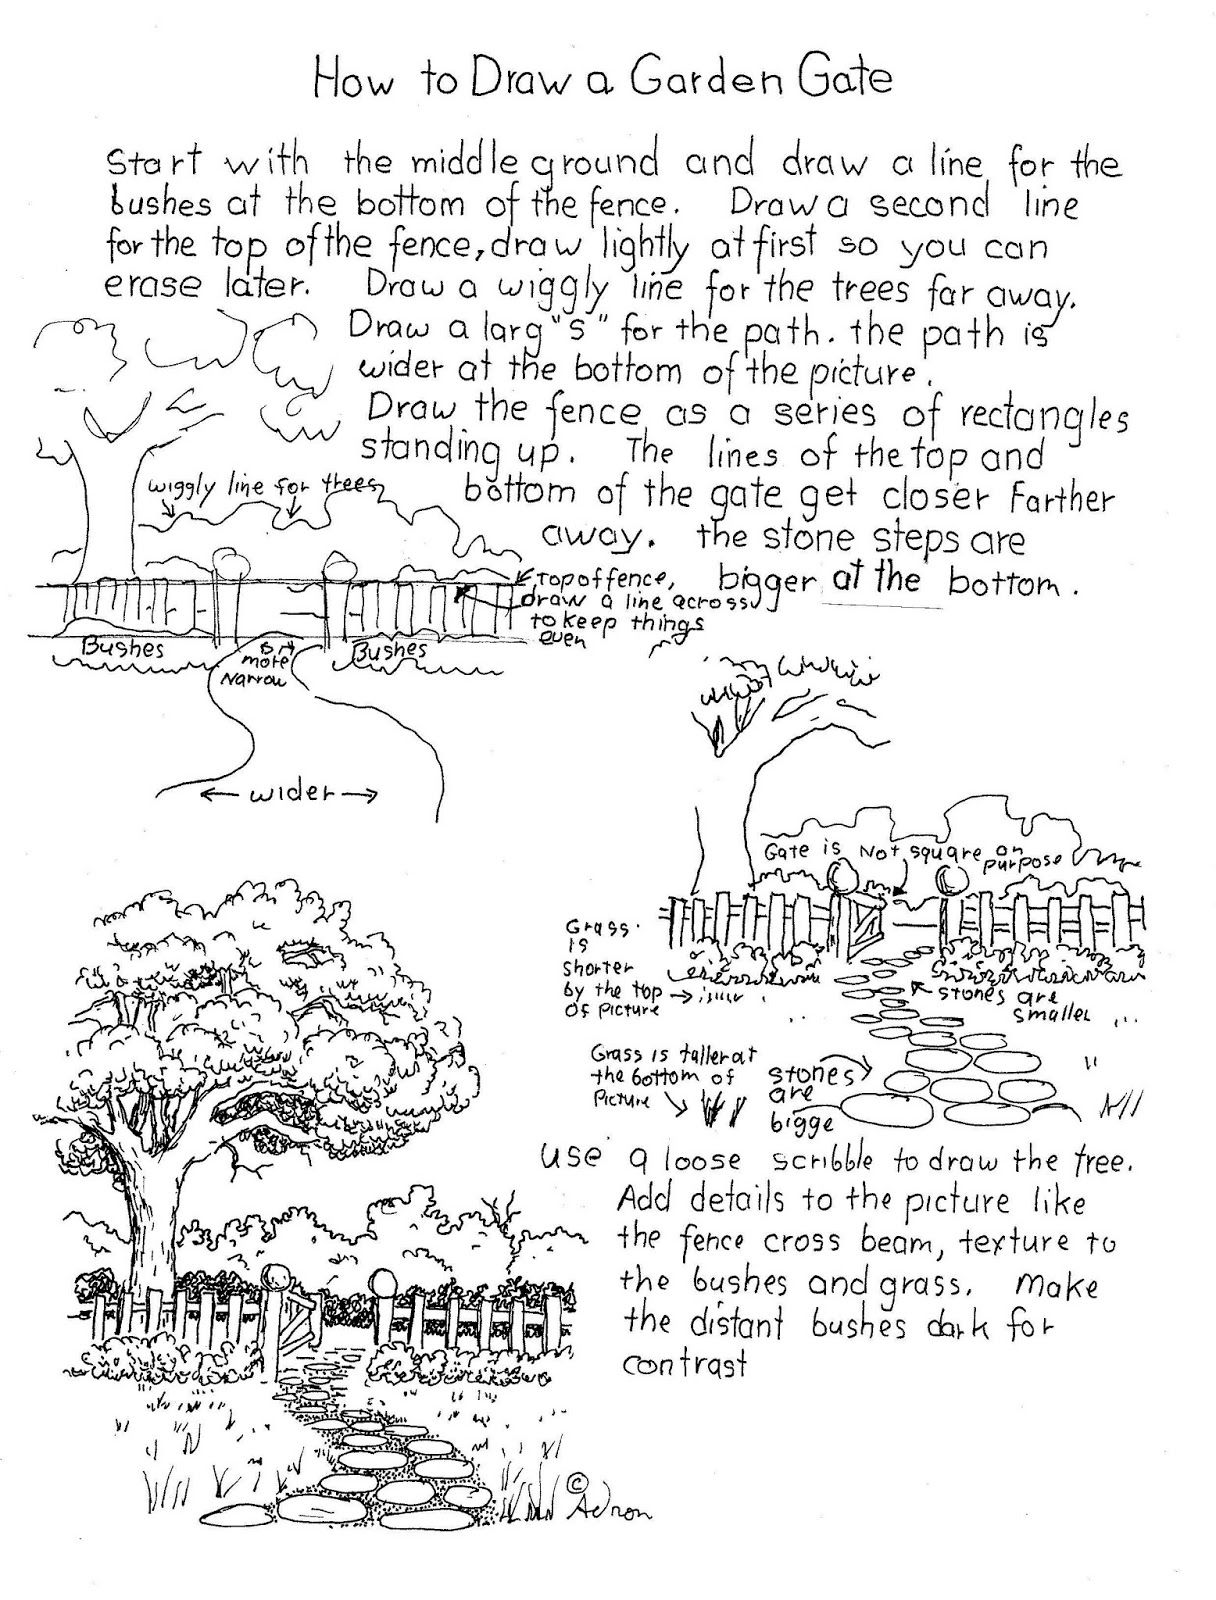 How To Draw A Garden Gate Worksheet